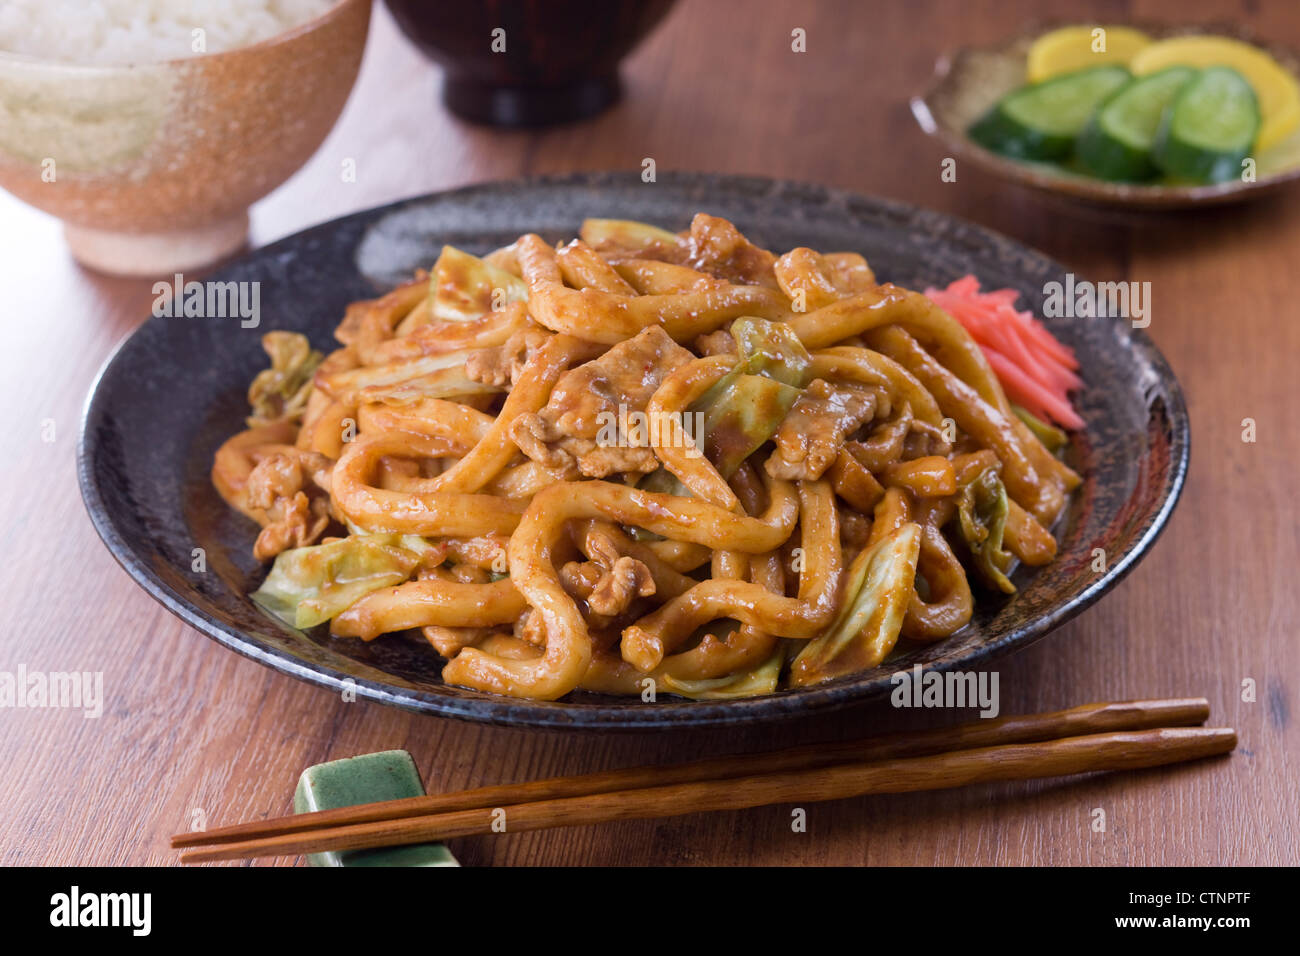 Ricetta Yaki Udon.Yaki Udon High Resolution Stock Photography And Images Alamy